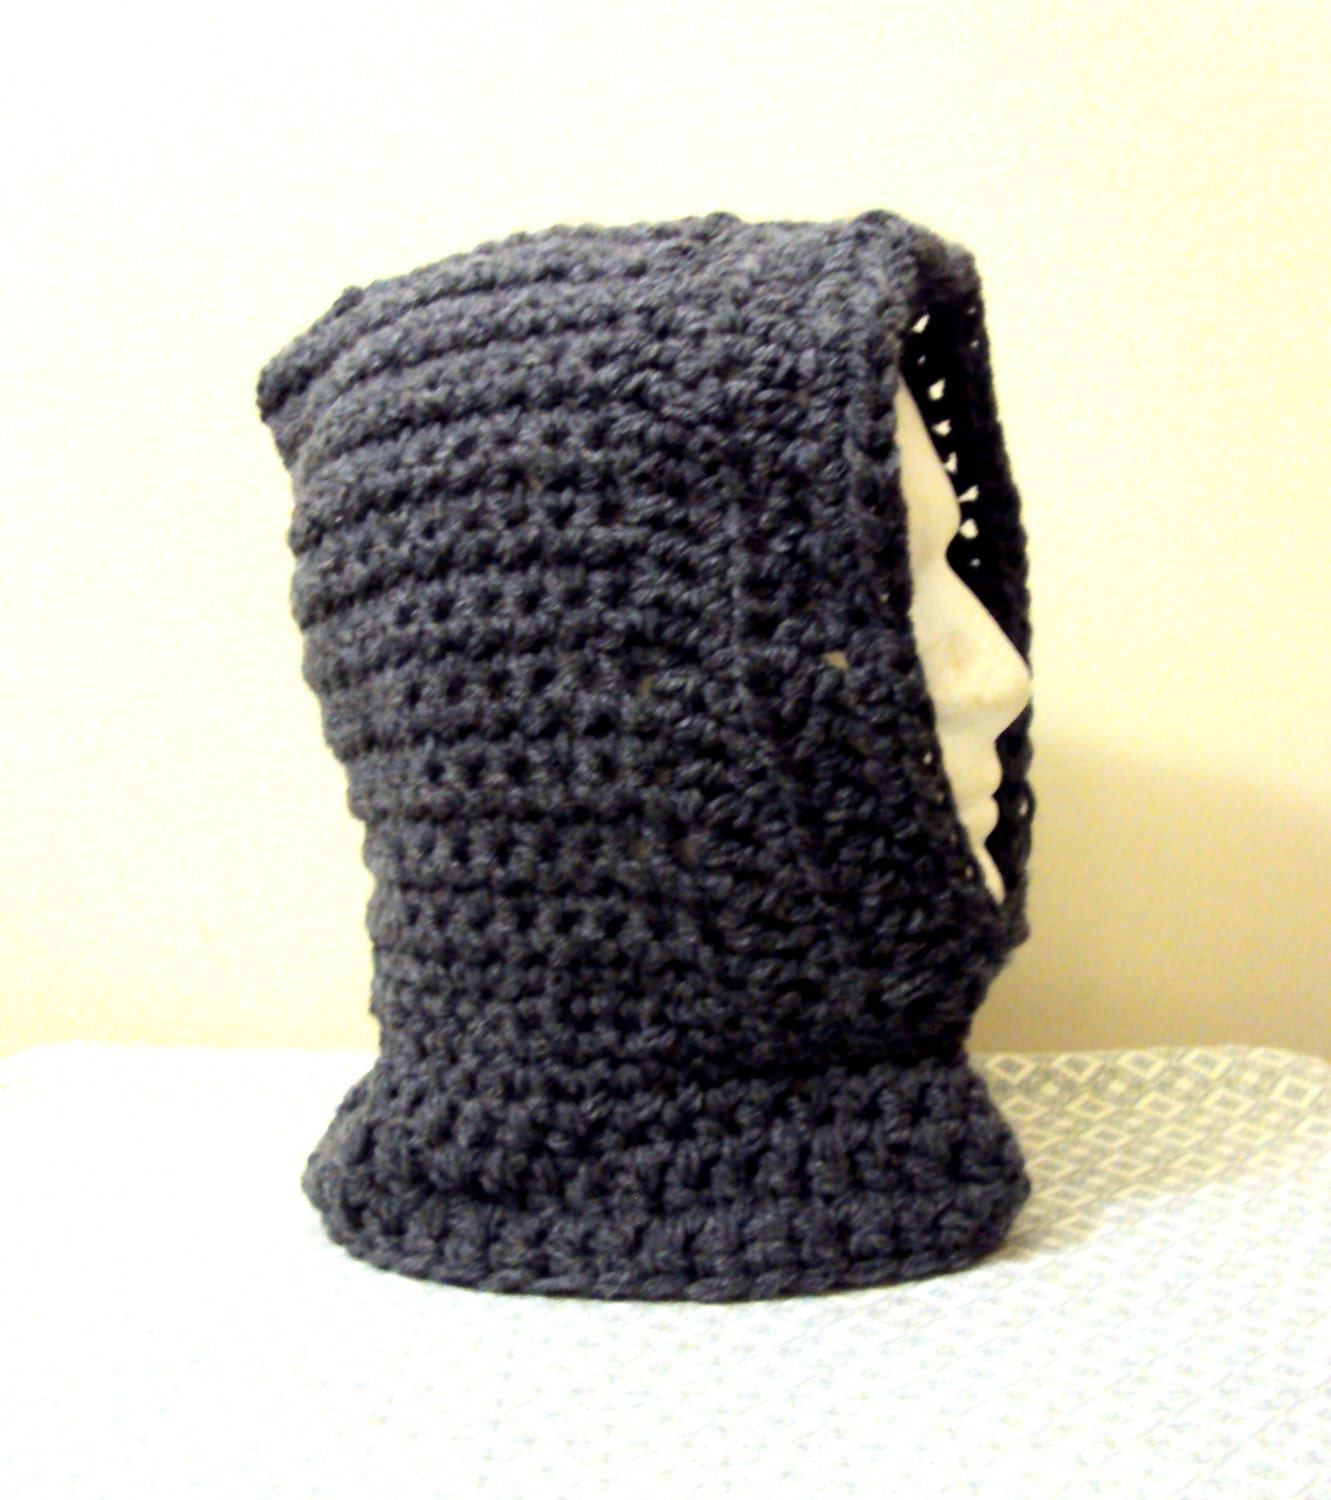 Crochet Pattern Hooded Scarf With Ears : Hooded Cowl Scarf Crochet Hoodie Scoodie Charcoal Grey